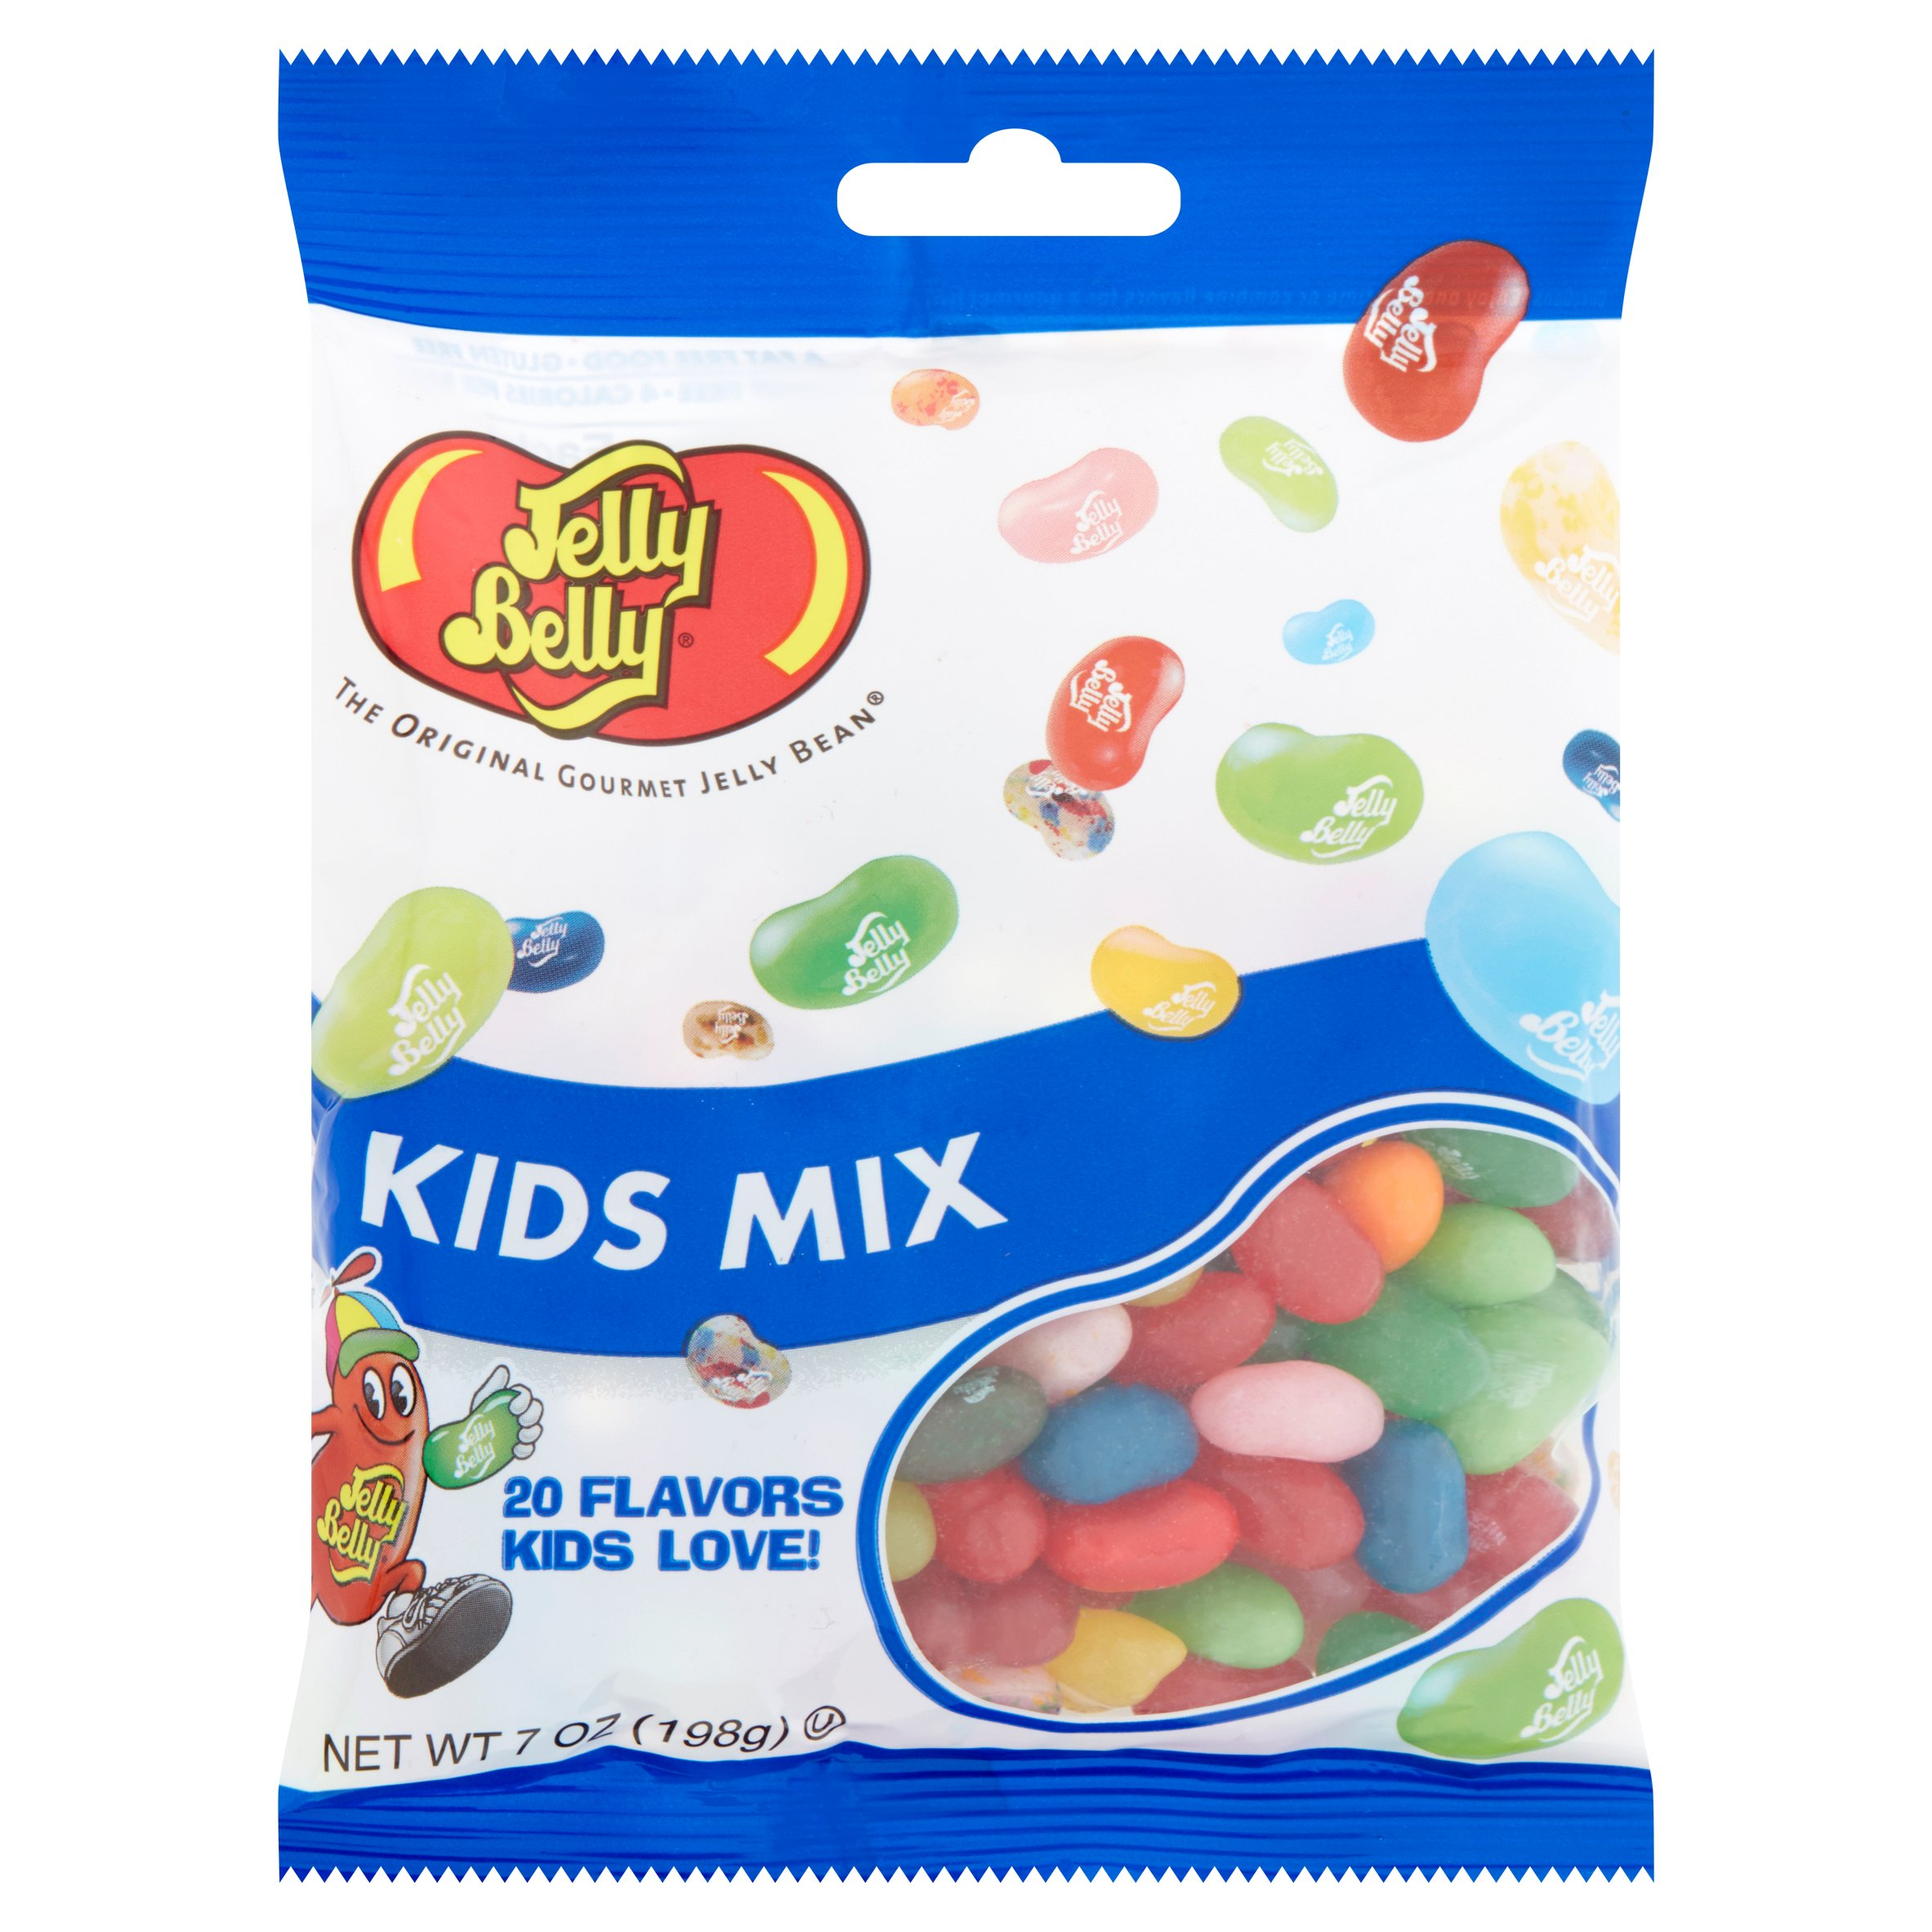 Jelly Belly, 20 Flavors Kids Mix Jelly Beans, 7 Oz